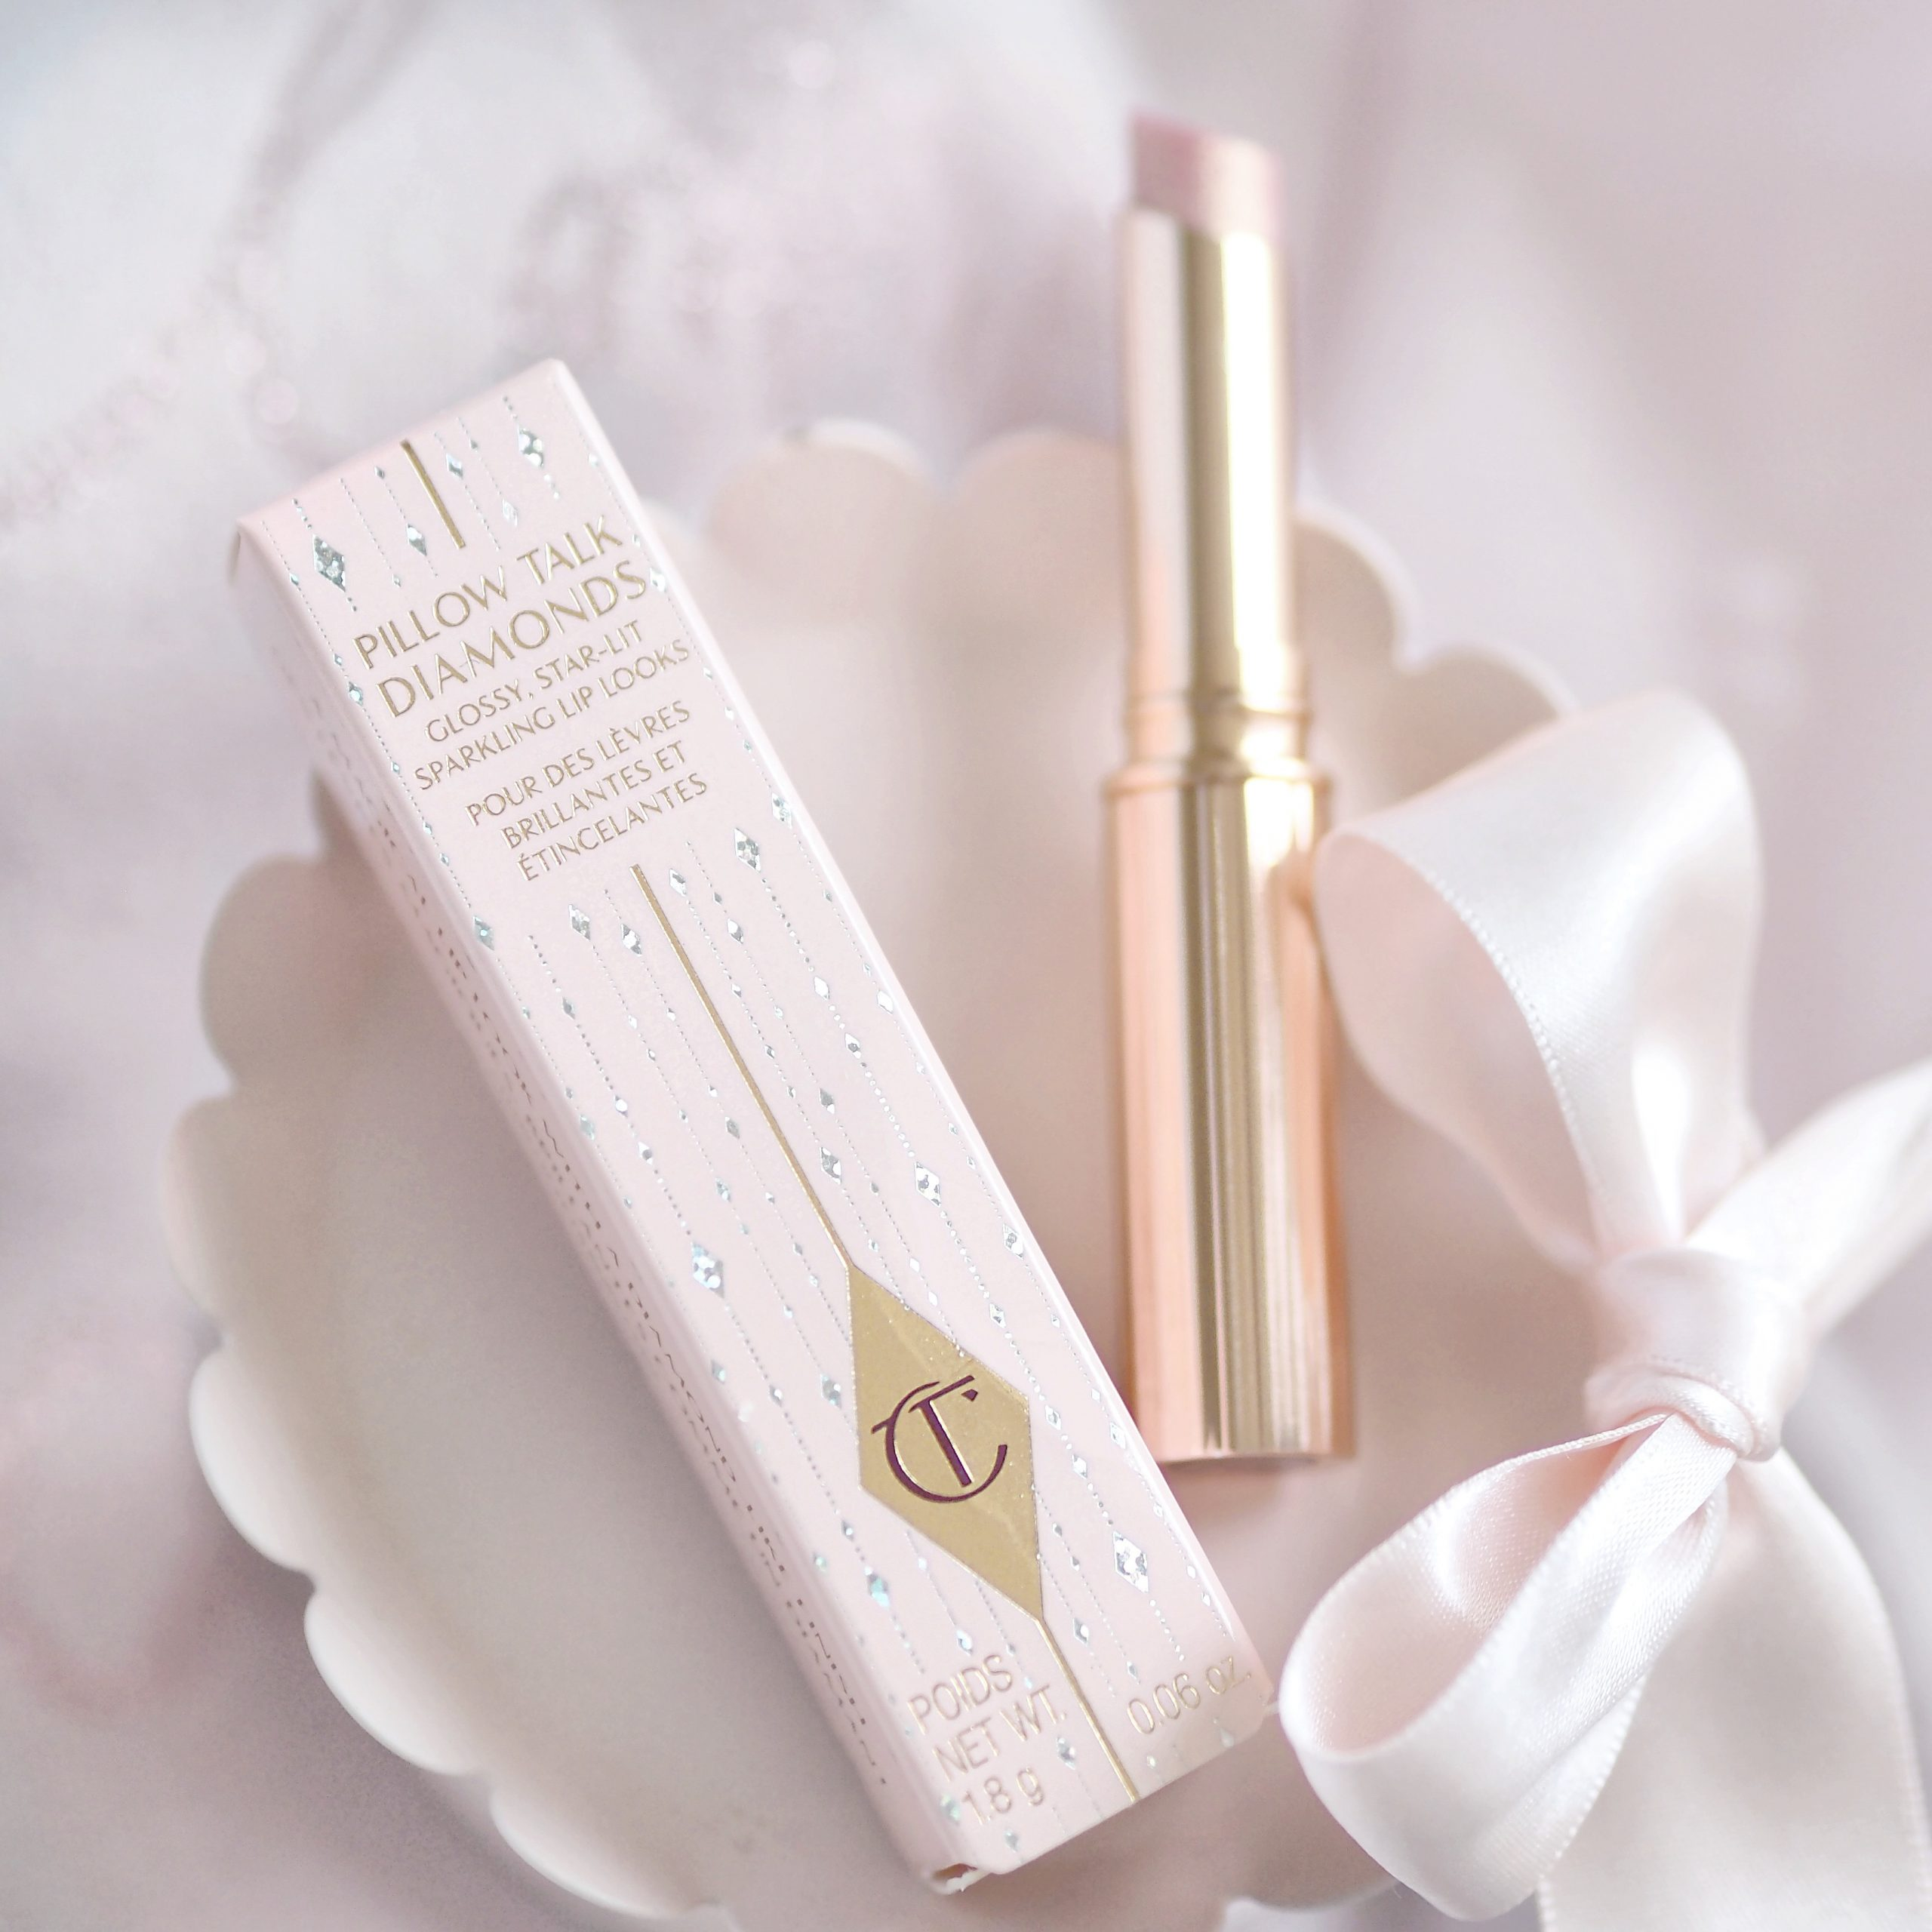 Charlotte Tilbury Pillow Talk Diamonds Lipstick | Perfectly Pretty Christmas Gift Ideas